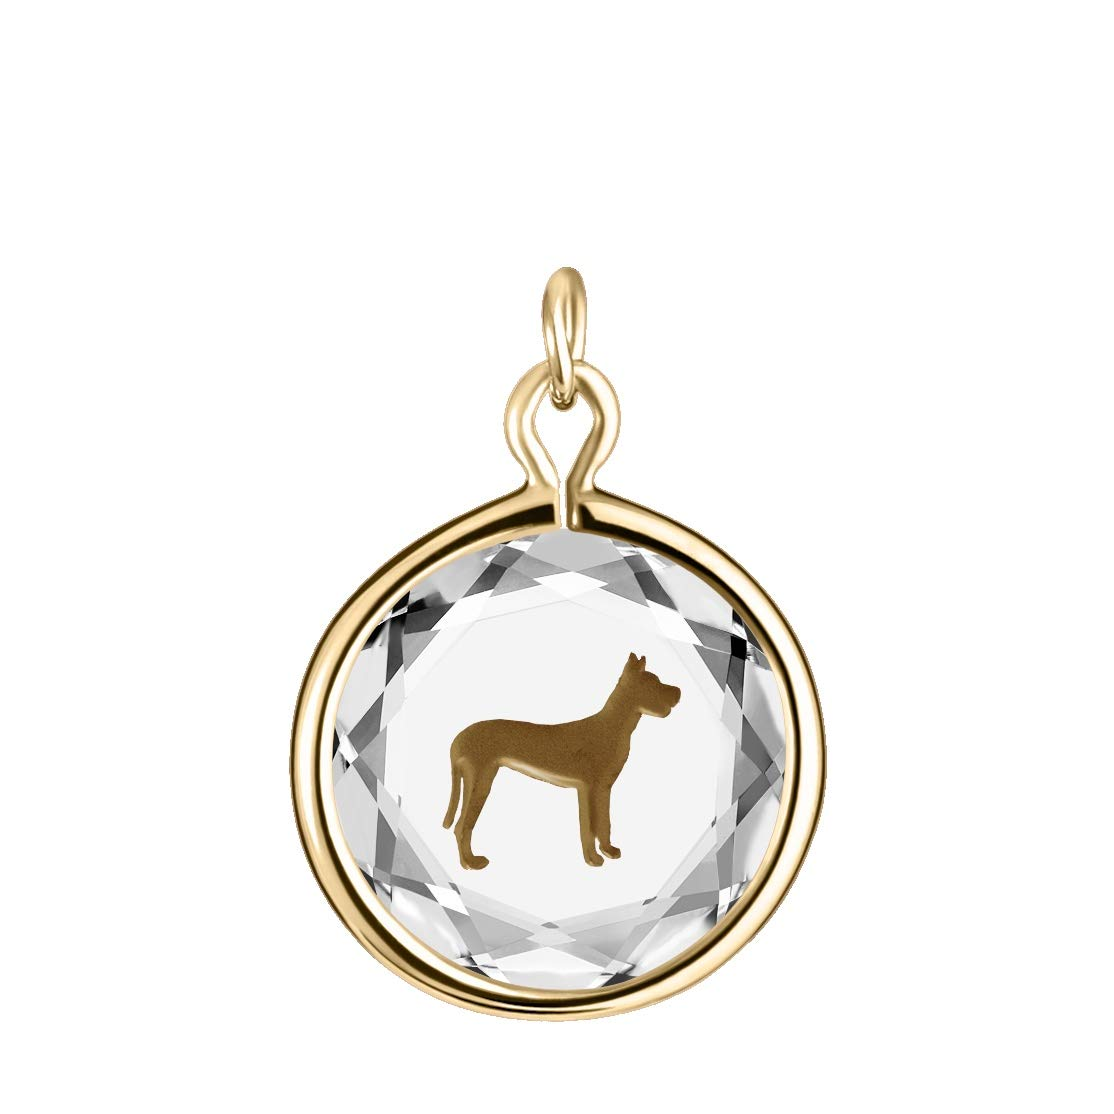 LovePendants Engraved and Enameled Swarovski Crystal Great Dane Pendant//Necklace in Sterling Silver